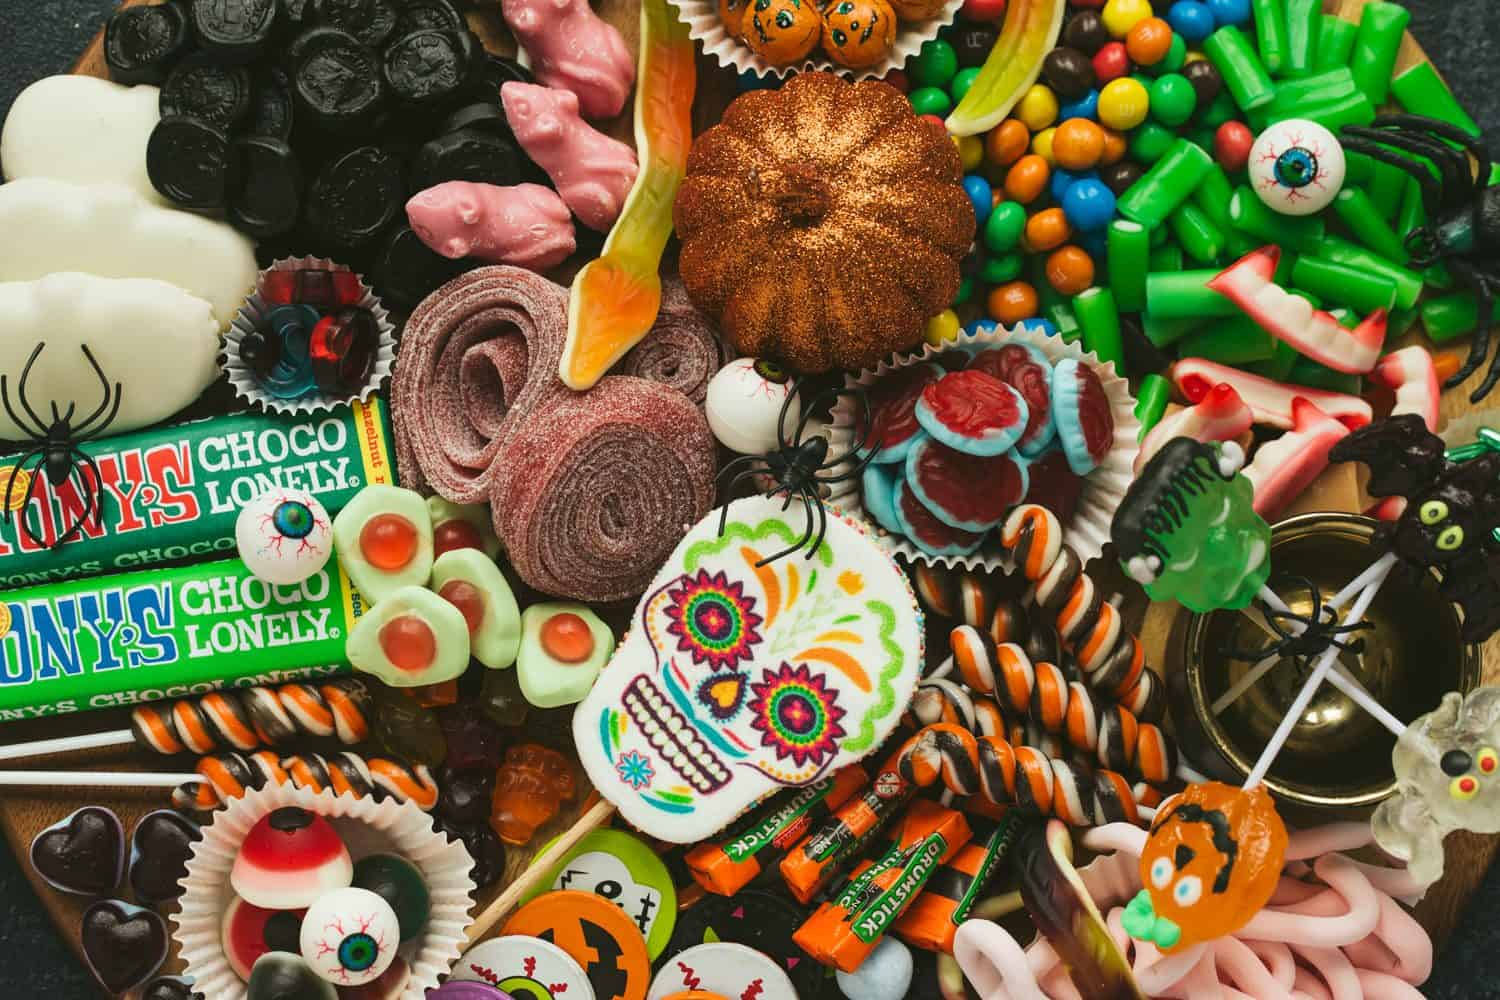 Close up of lots of different Halloween candy. There is a large marshmallow day of the dead lolly in the centre and it is surrounded by lollipops, chocolate and sweets.